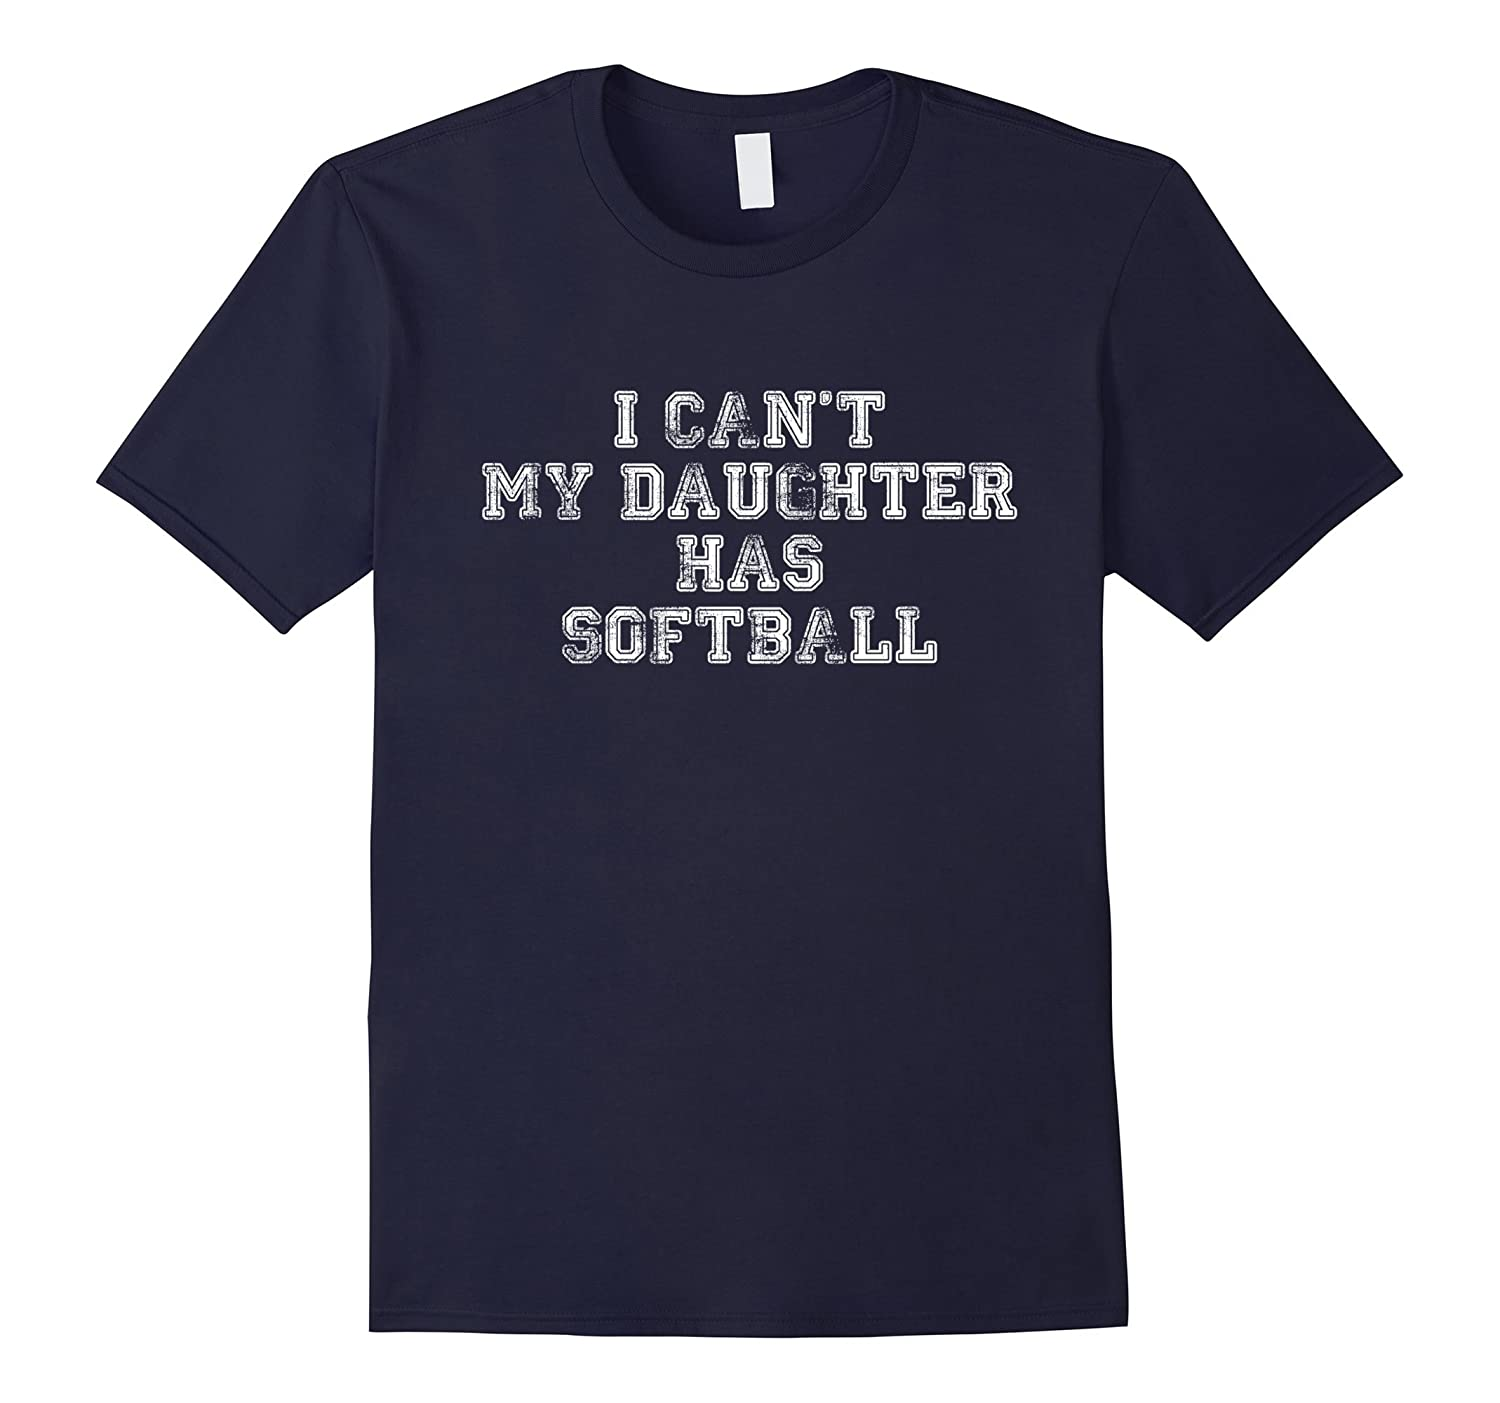 I Cant My Daughter Has Softball Tshirt for Softball Mom Dad-TH